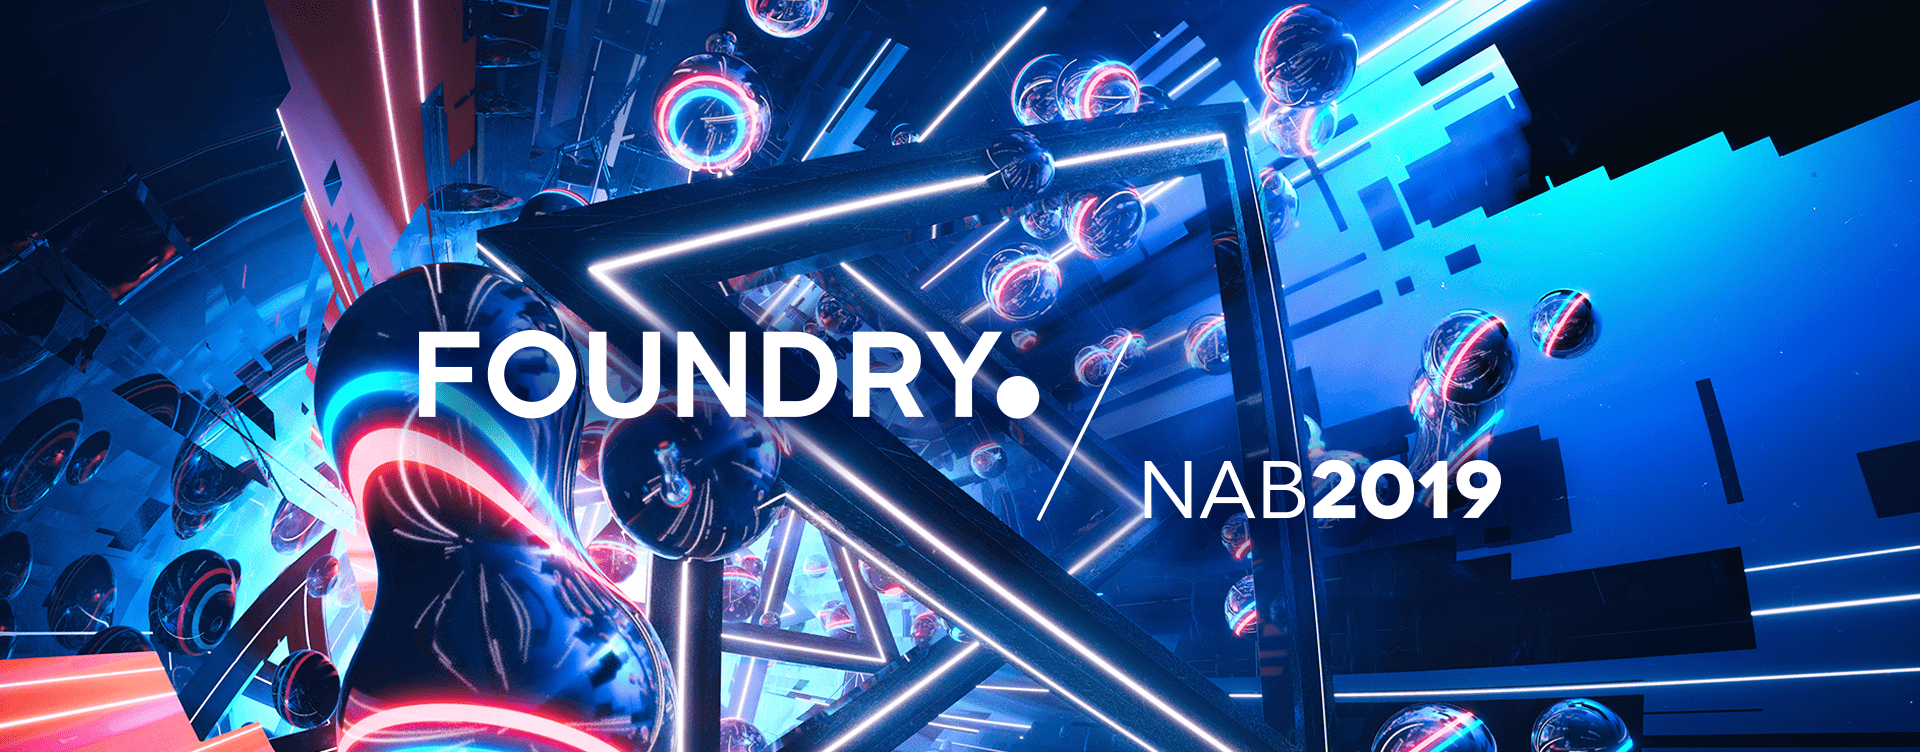 Foundry at NAB 2019